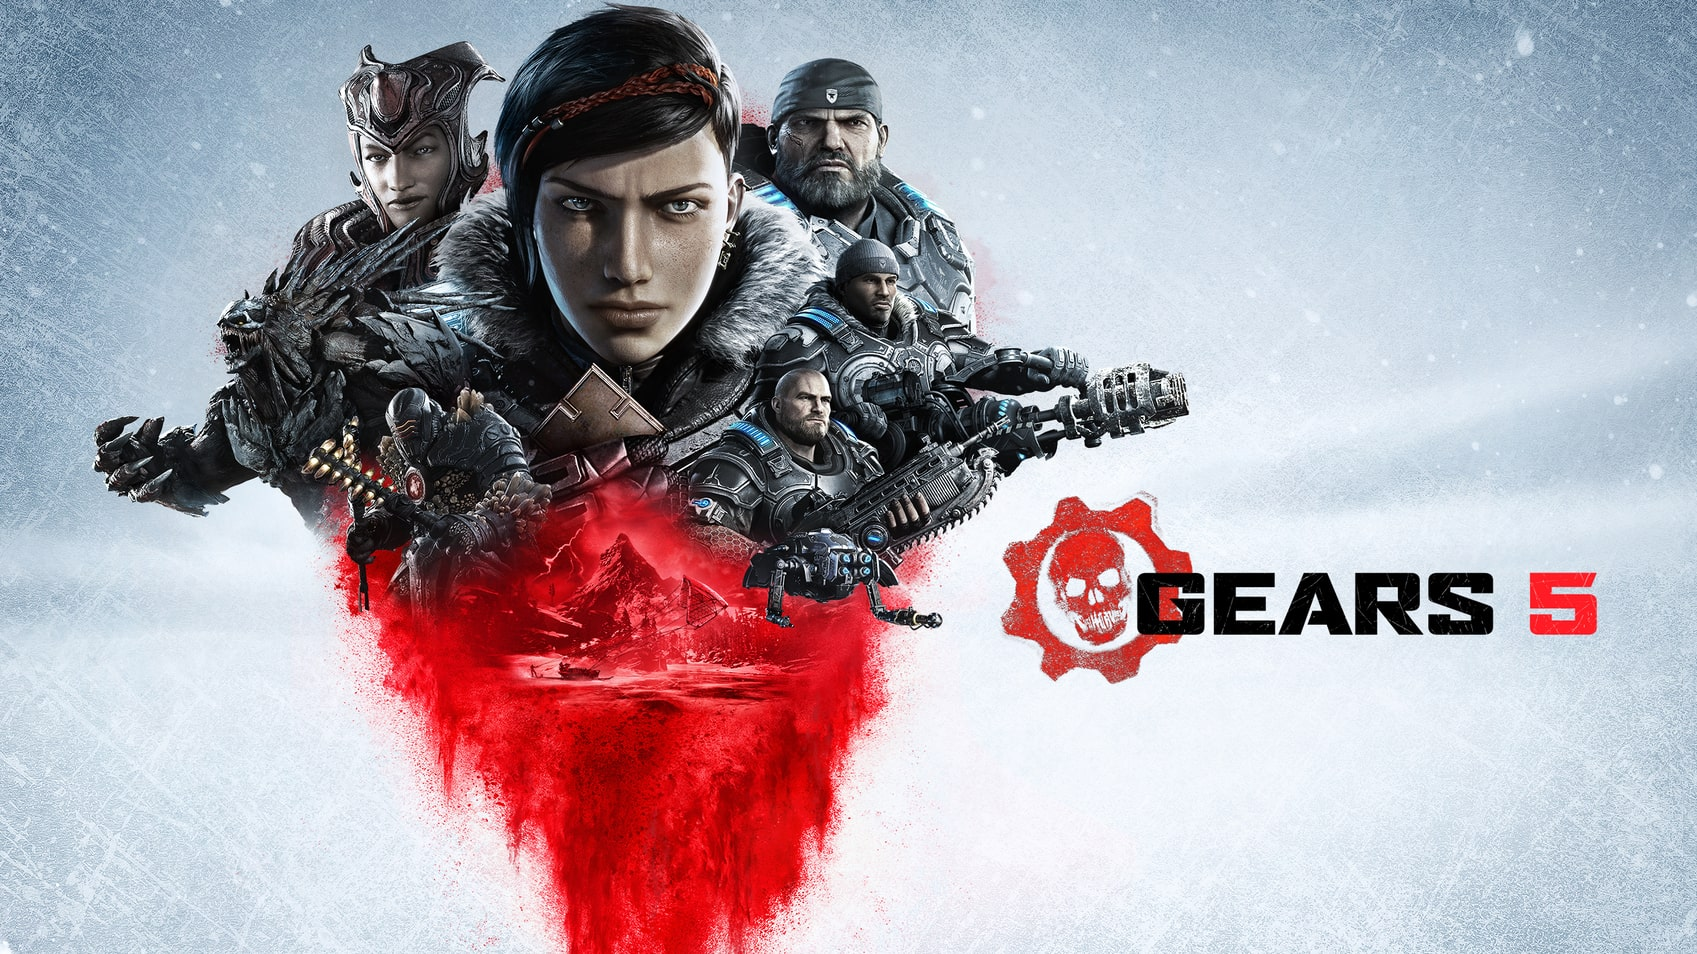 biggest games announced at e3 - gears of war 5